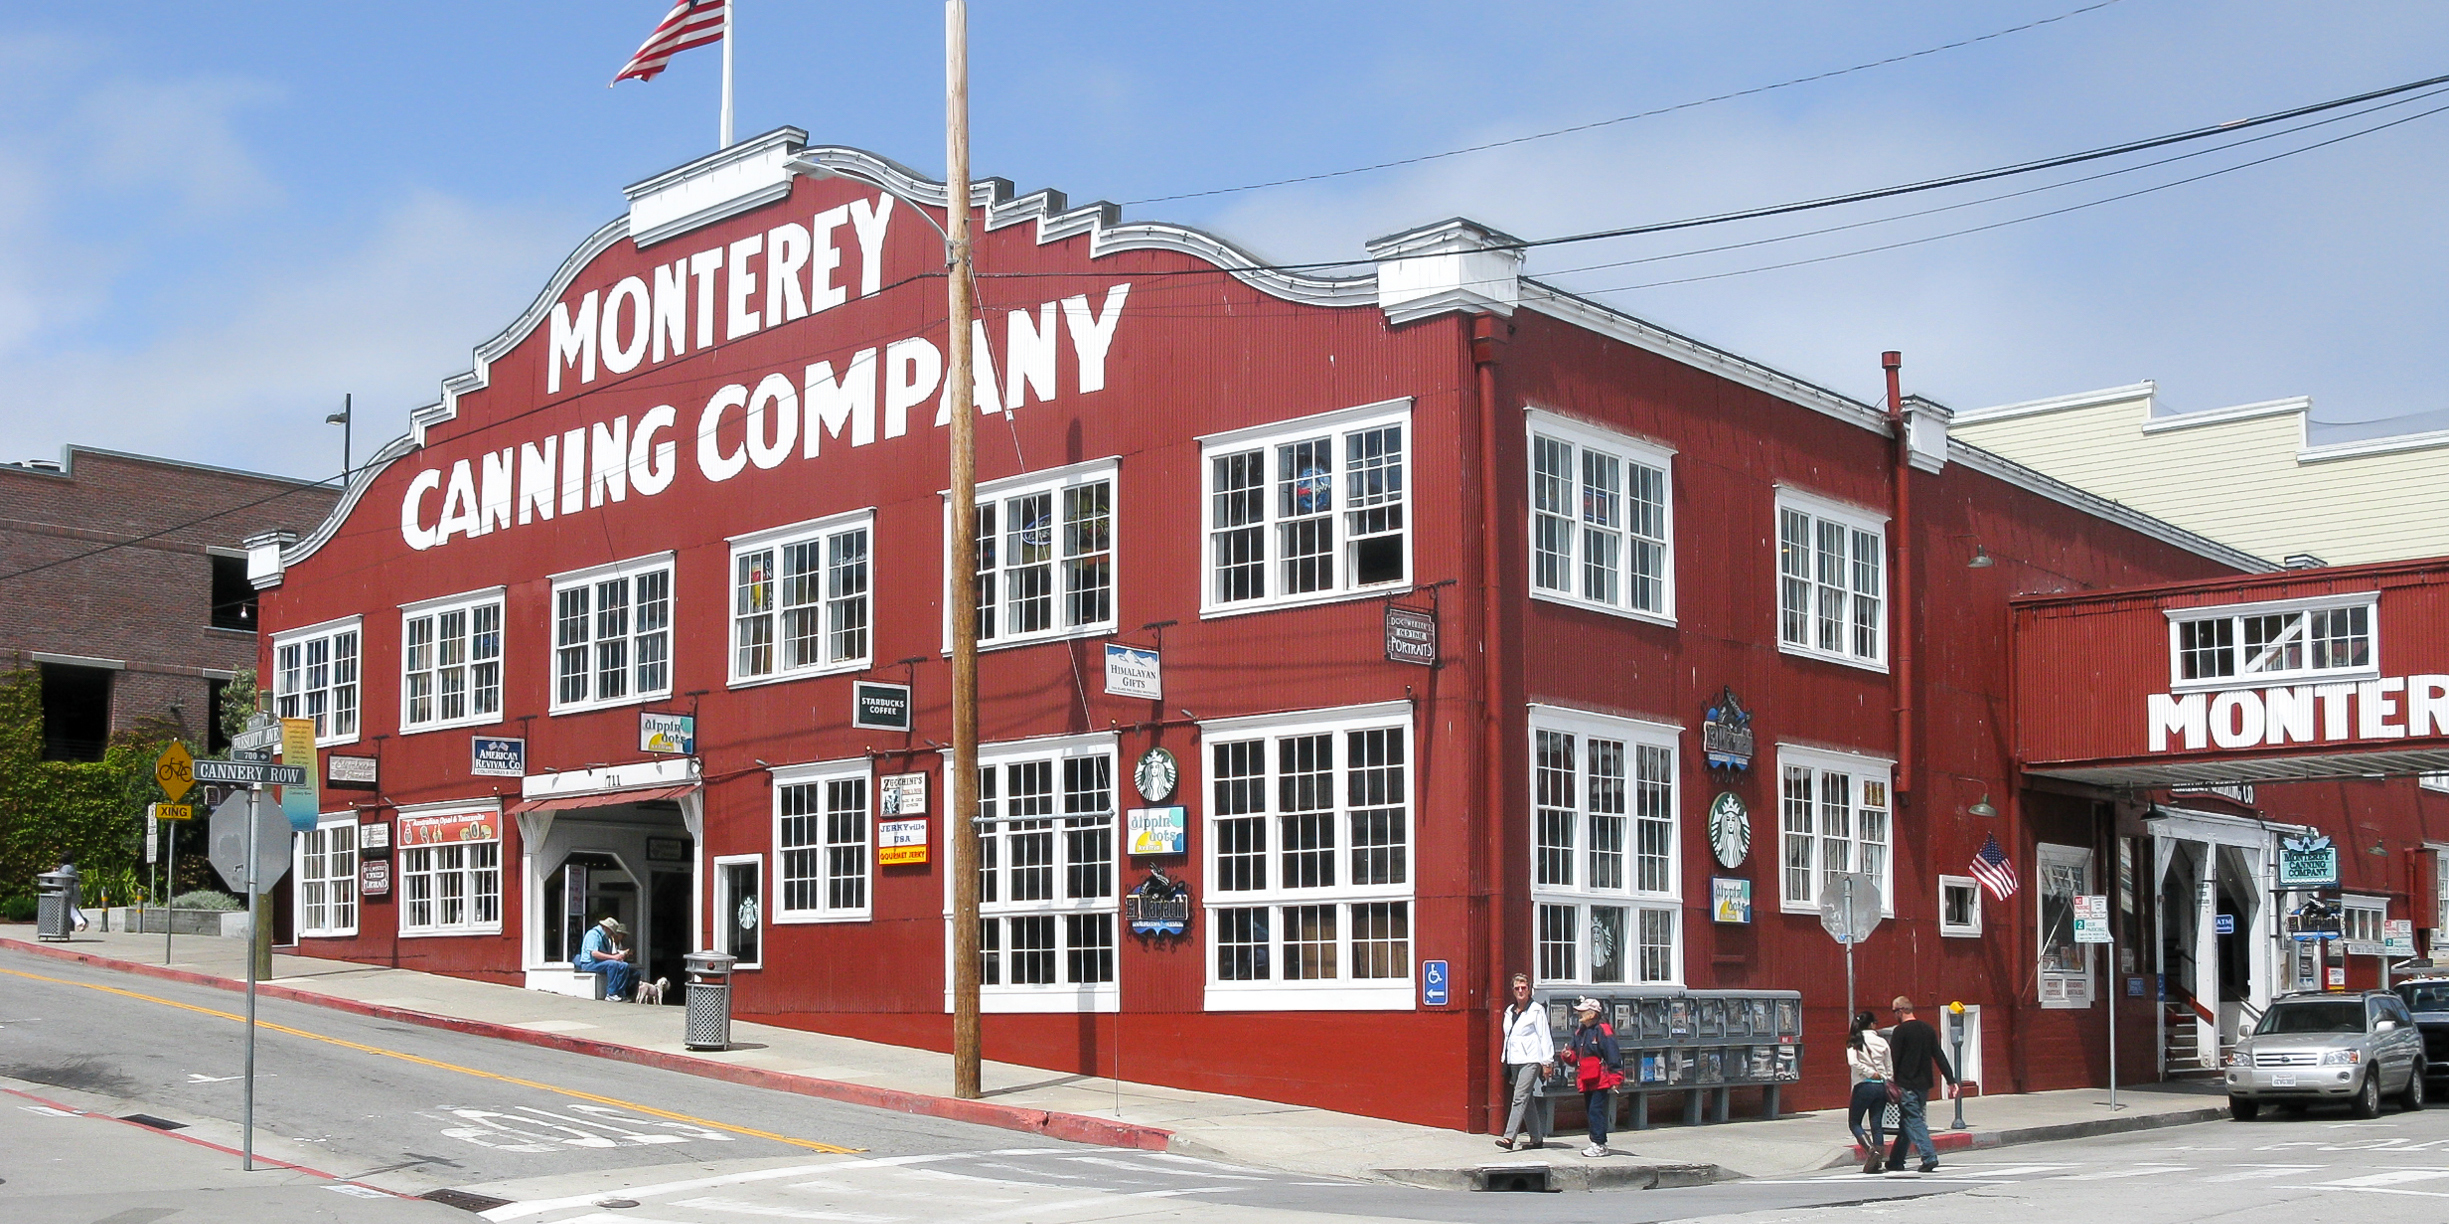 What To Do See And Eat On Cannery Row In Monterey Ca Via